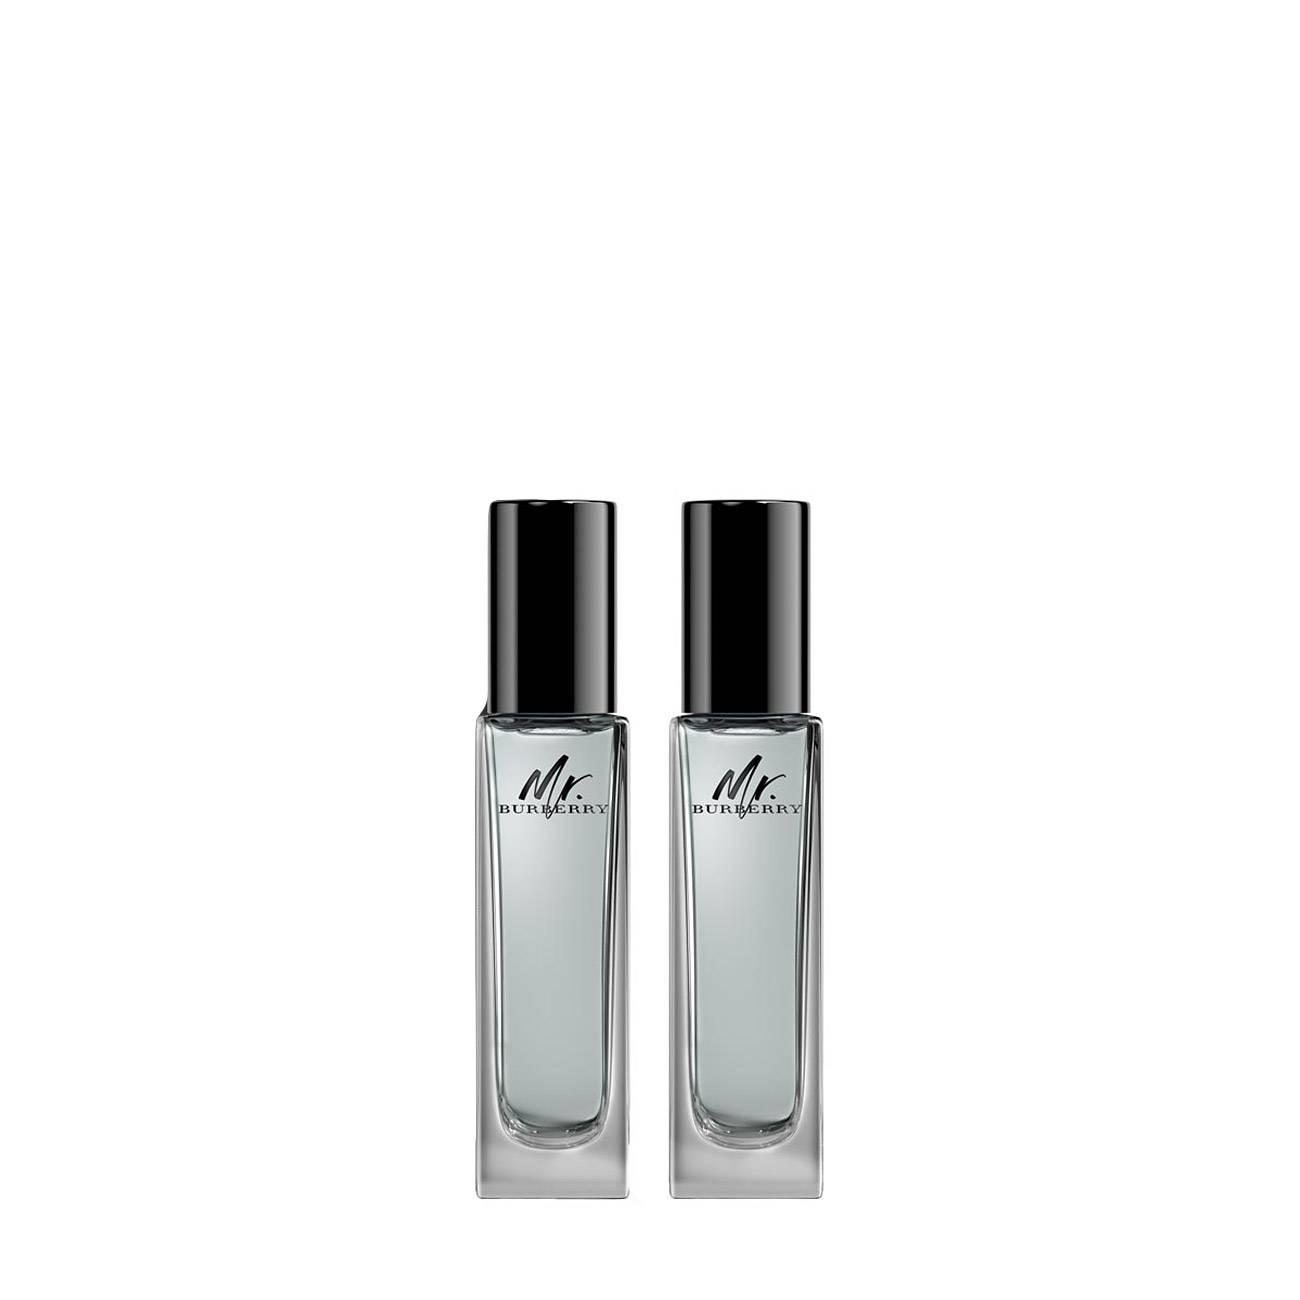 MR.BURBERRY DUO SET 60ml imagine produs